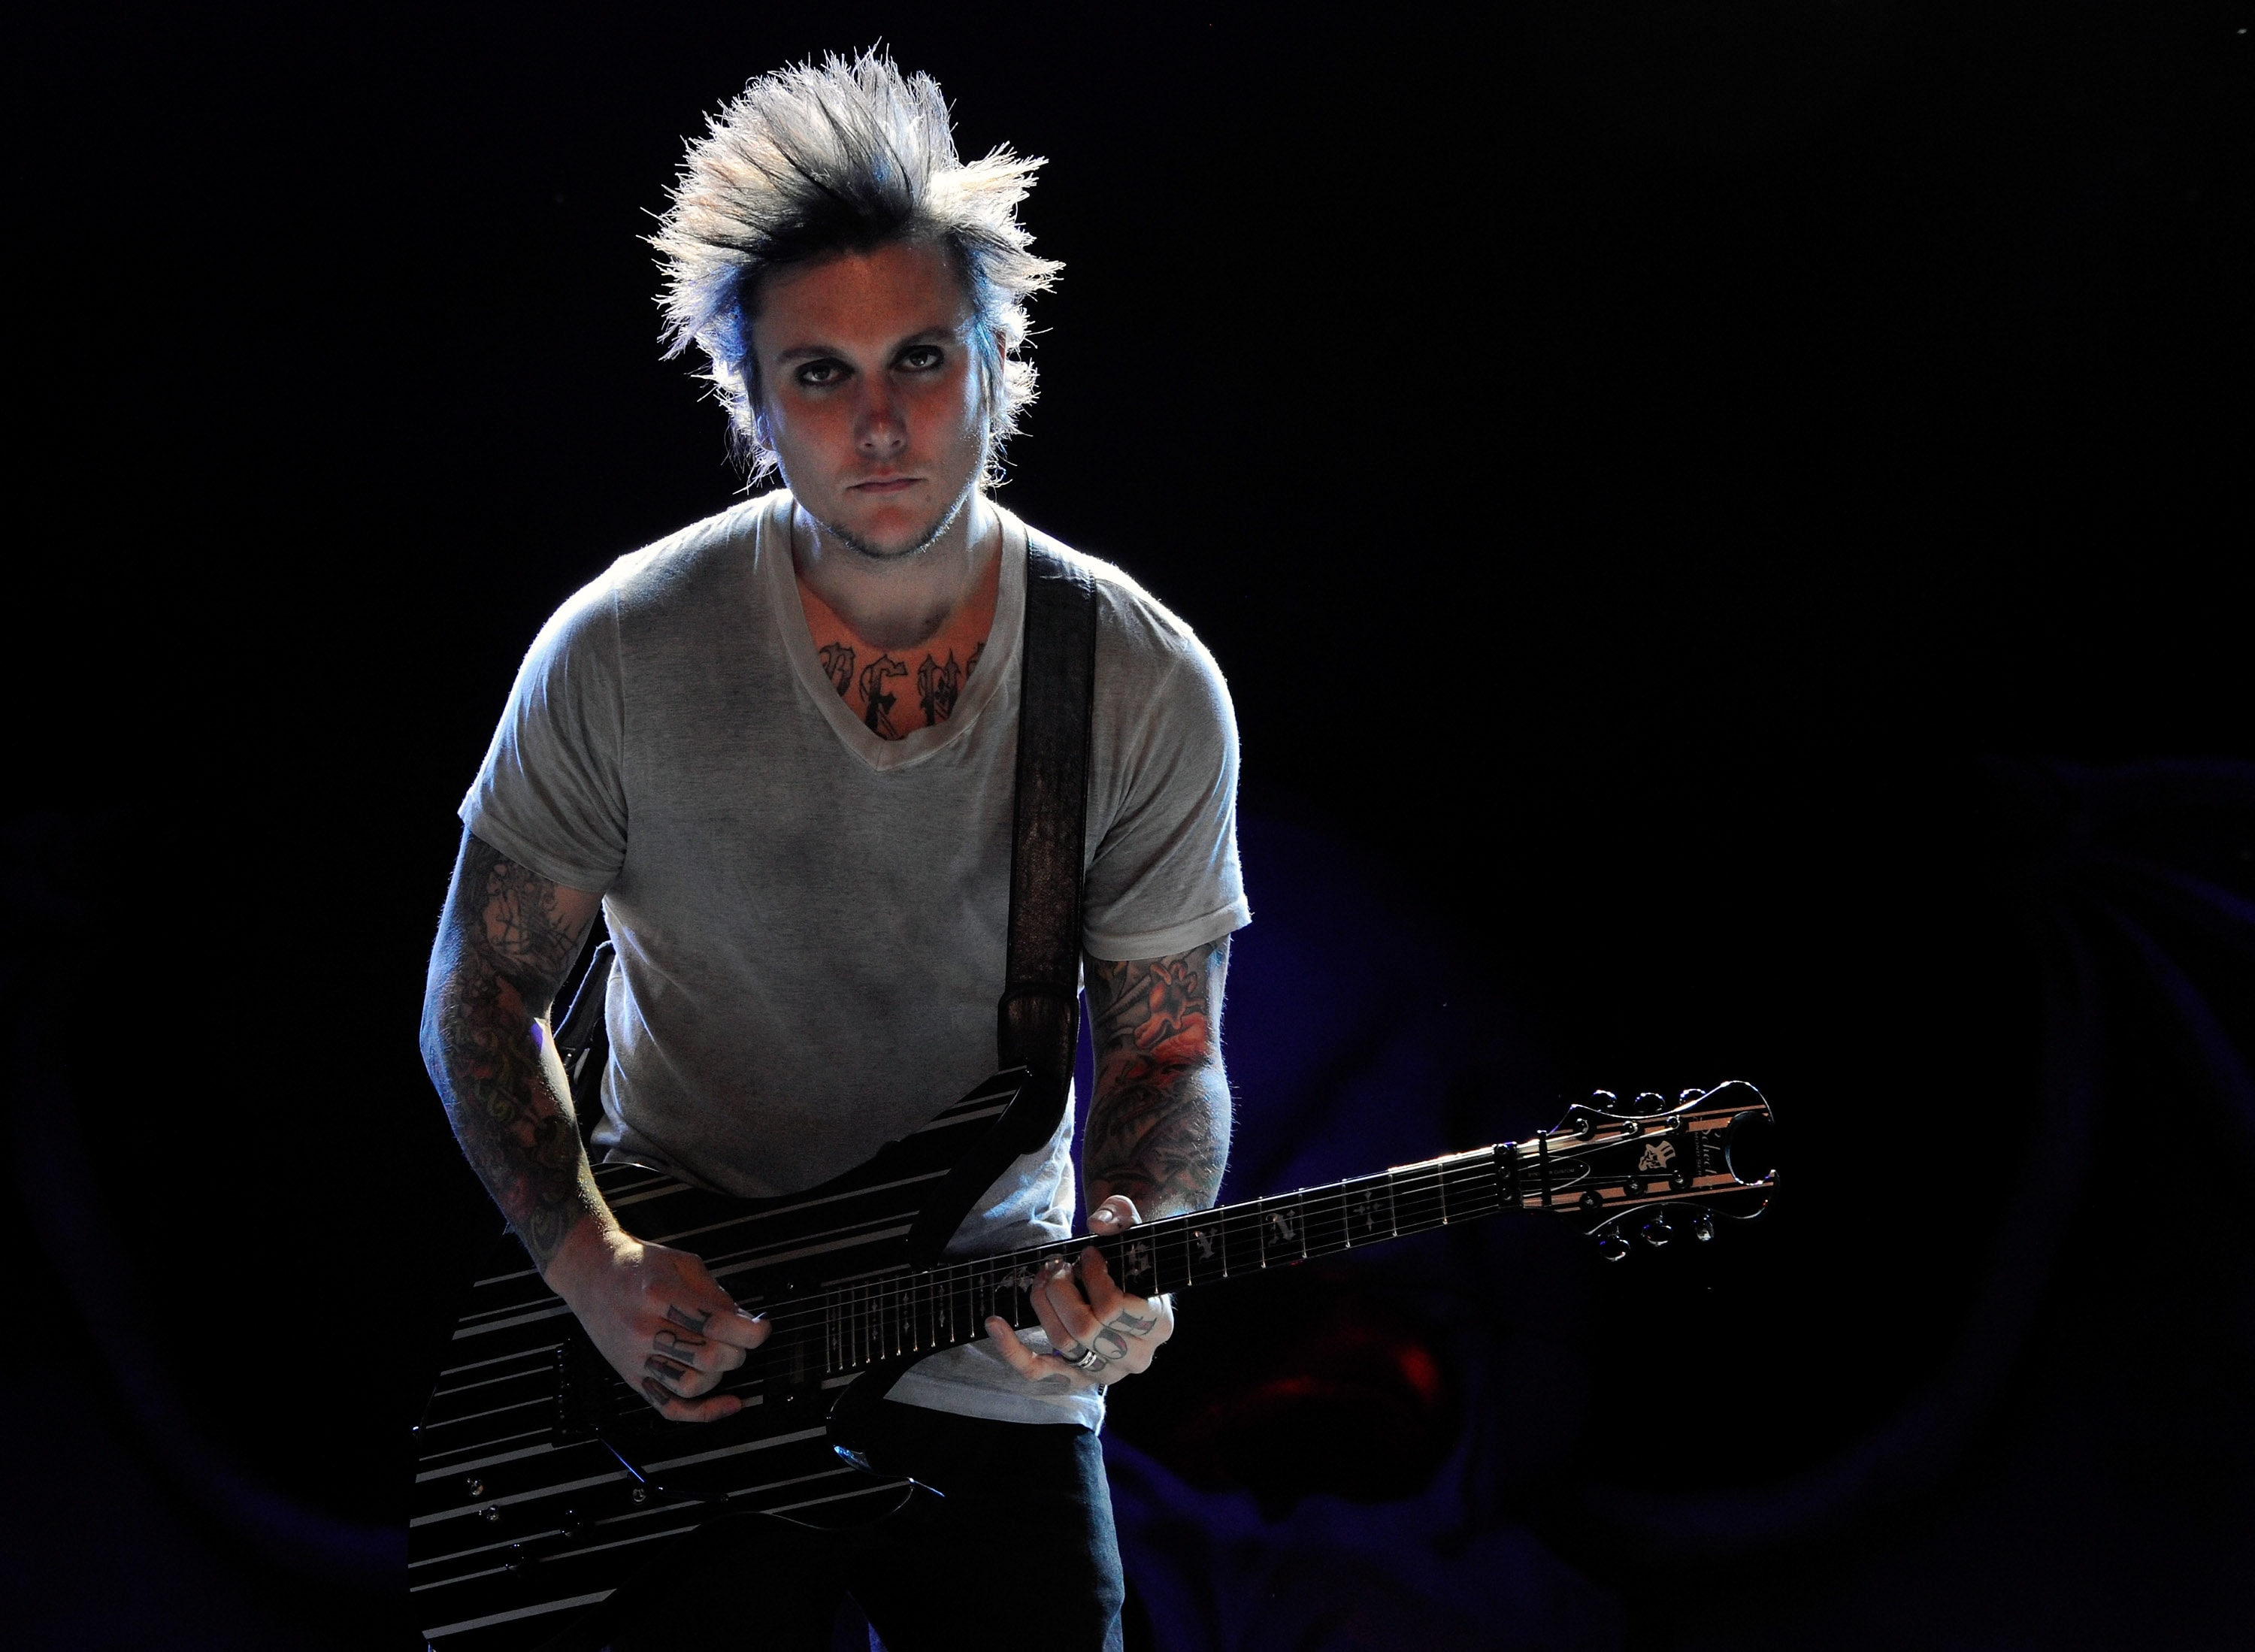 LAS VEGAS, NV - OCTOBER 15: Avenged Sevenfold guitarist Synyster Gates performs during the 48 Hours Festival October 15, 2011 in Las Vegas, Nevada.